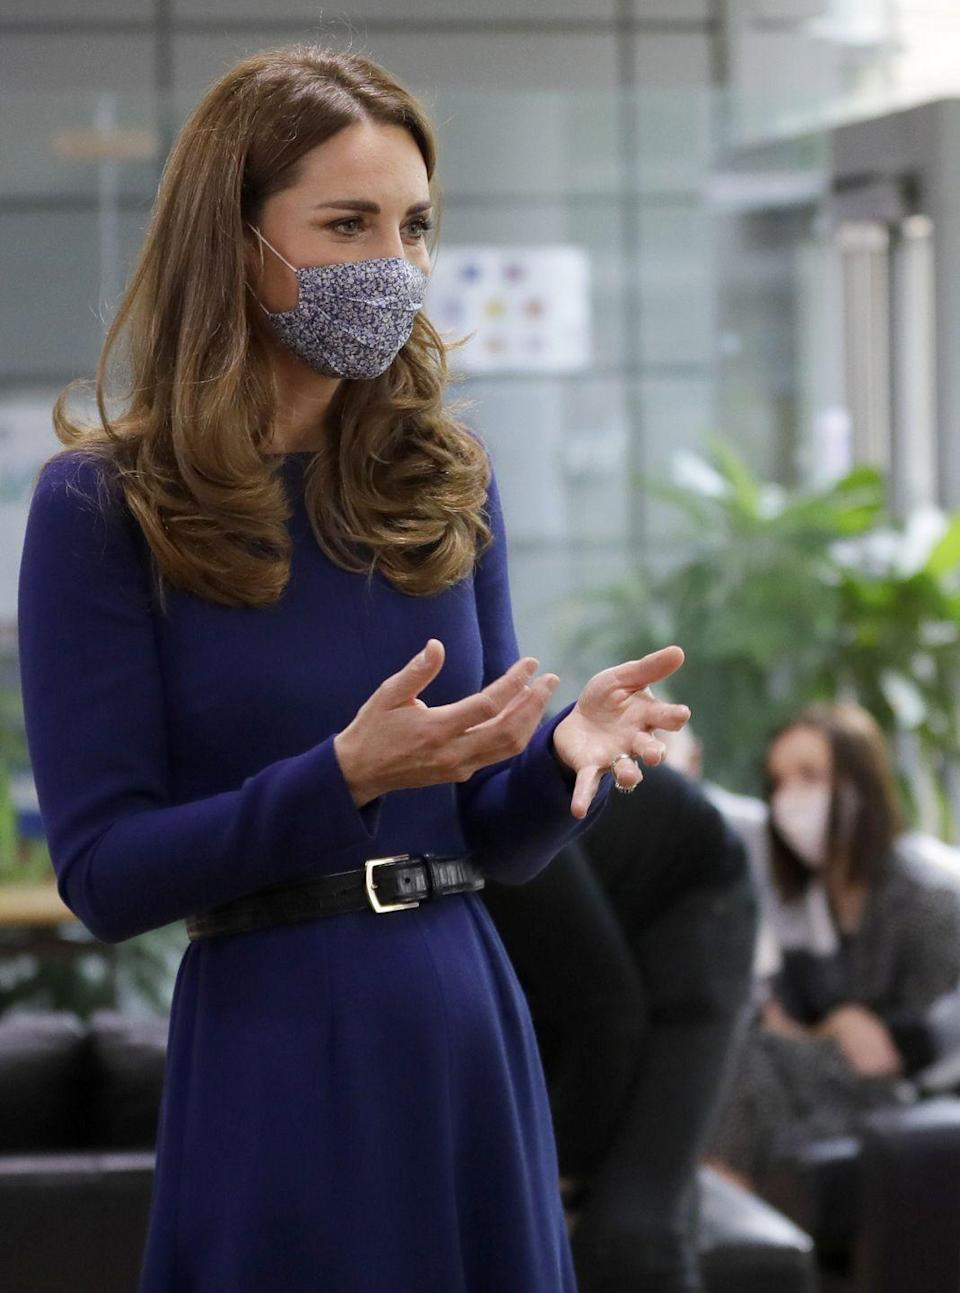 "<p>The Duchess of Cambridge visited the Institute of Reproductive and Development Biology at London's Imperial College. Though she wore a white lab coat for most of the day, underneath, Kate sported an indigo, long-sleeved Emilia Wickstead dress, with a black belt and blue floral mask. </p><p><a class=""link rapid-noclick-resp"" href=""https://go.redirectingat.com?id=74968X1596630&url=https%3A%2F%2Fwww.net-a-porter.com%2Fen-us%2Fshop%2Fproduct%2Femilia-wickstead%2Fjorgie-ruched-cloque-midi-dress%2F1262324&sref=https%3A%2F%2Fwww.townandcountrymag.com%2Fstyle%2Ffashion-trends%2Fnews%2Fg1633%2Fkate-middleton-fashion%2F"" rel=""nofollow noopener"" target=""_blank"" data-ylk=""slk:Shop a Similar Style"">Shop a Similar Style</a></p>"